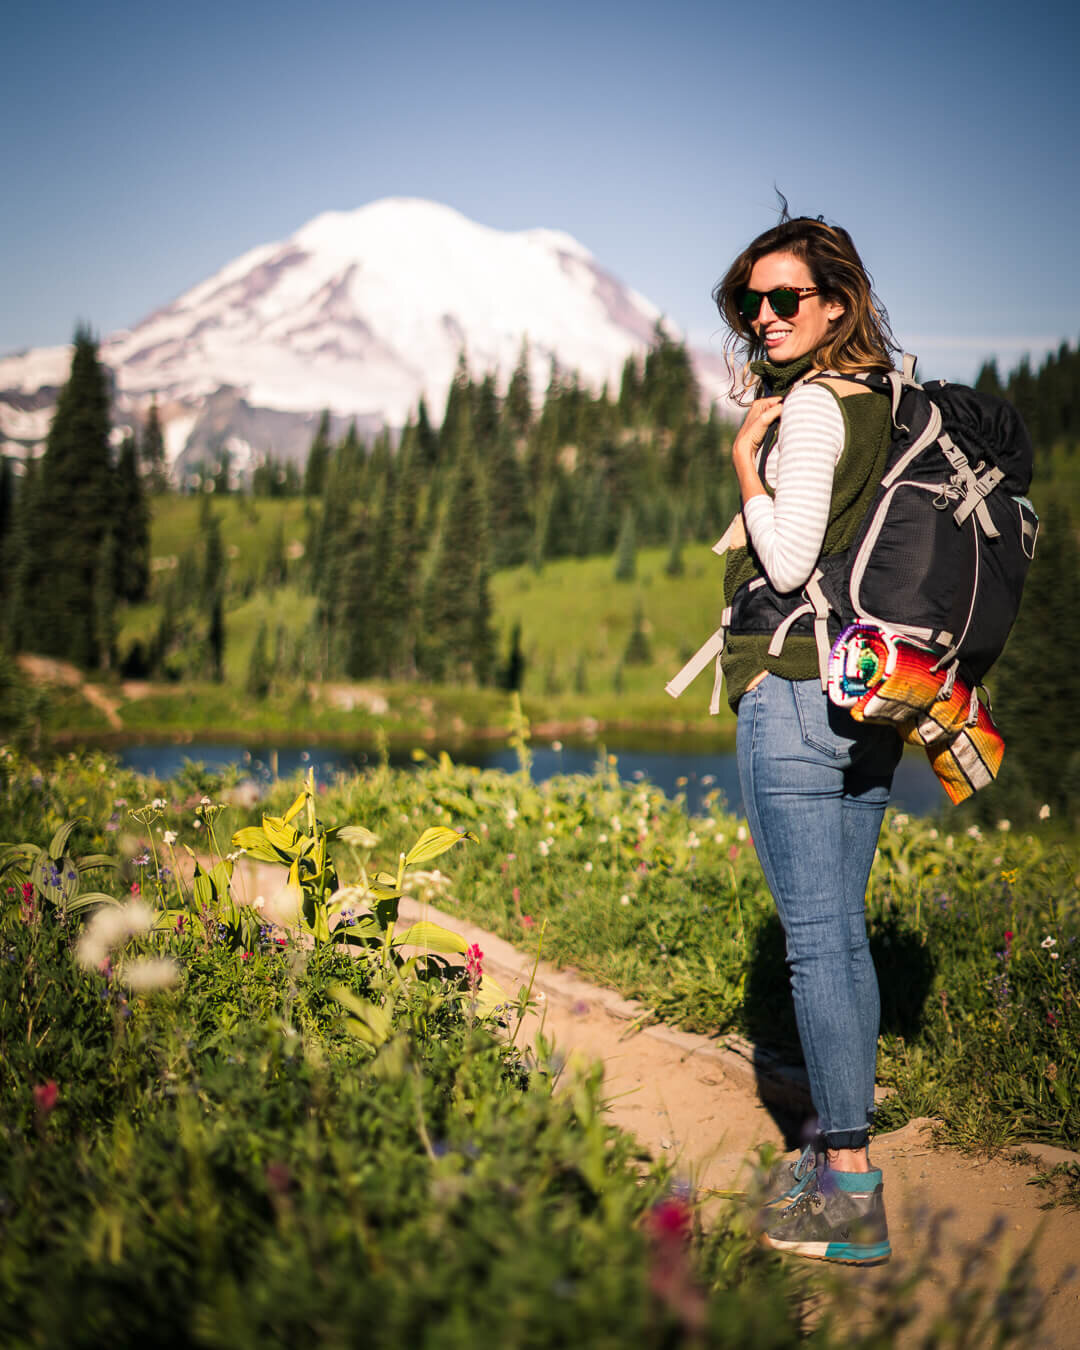 Hiking around Tipsoo Lake and Naches Loop Trail in late July when the wild flowers are at their peak.